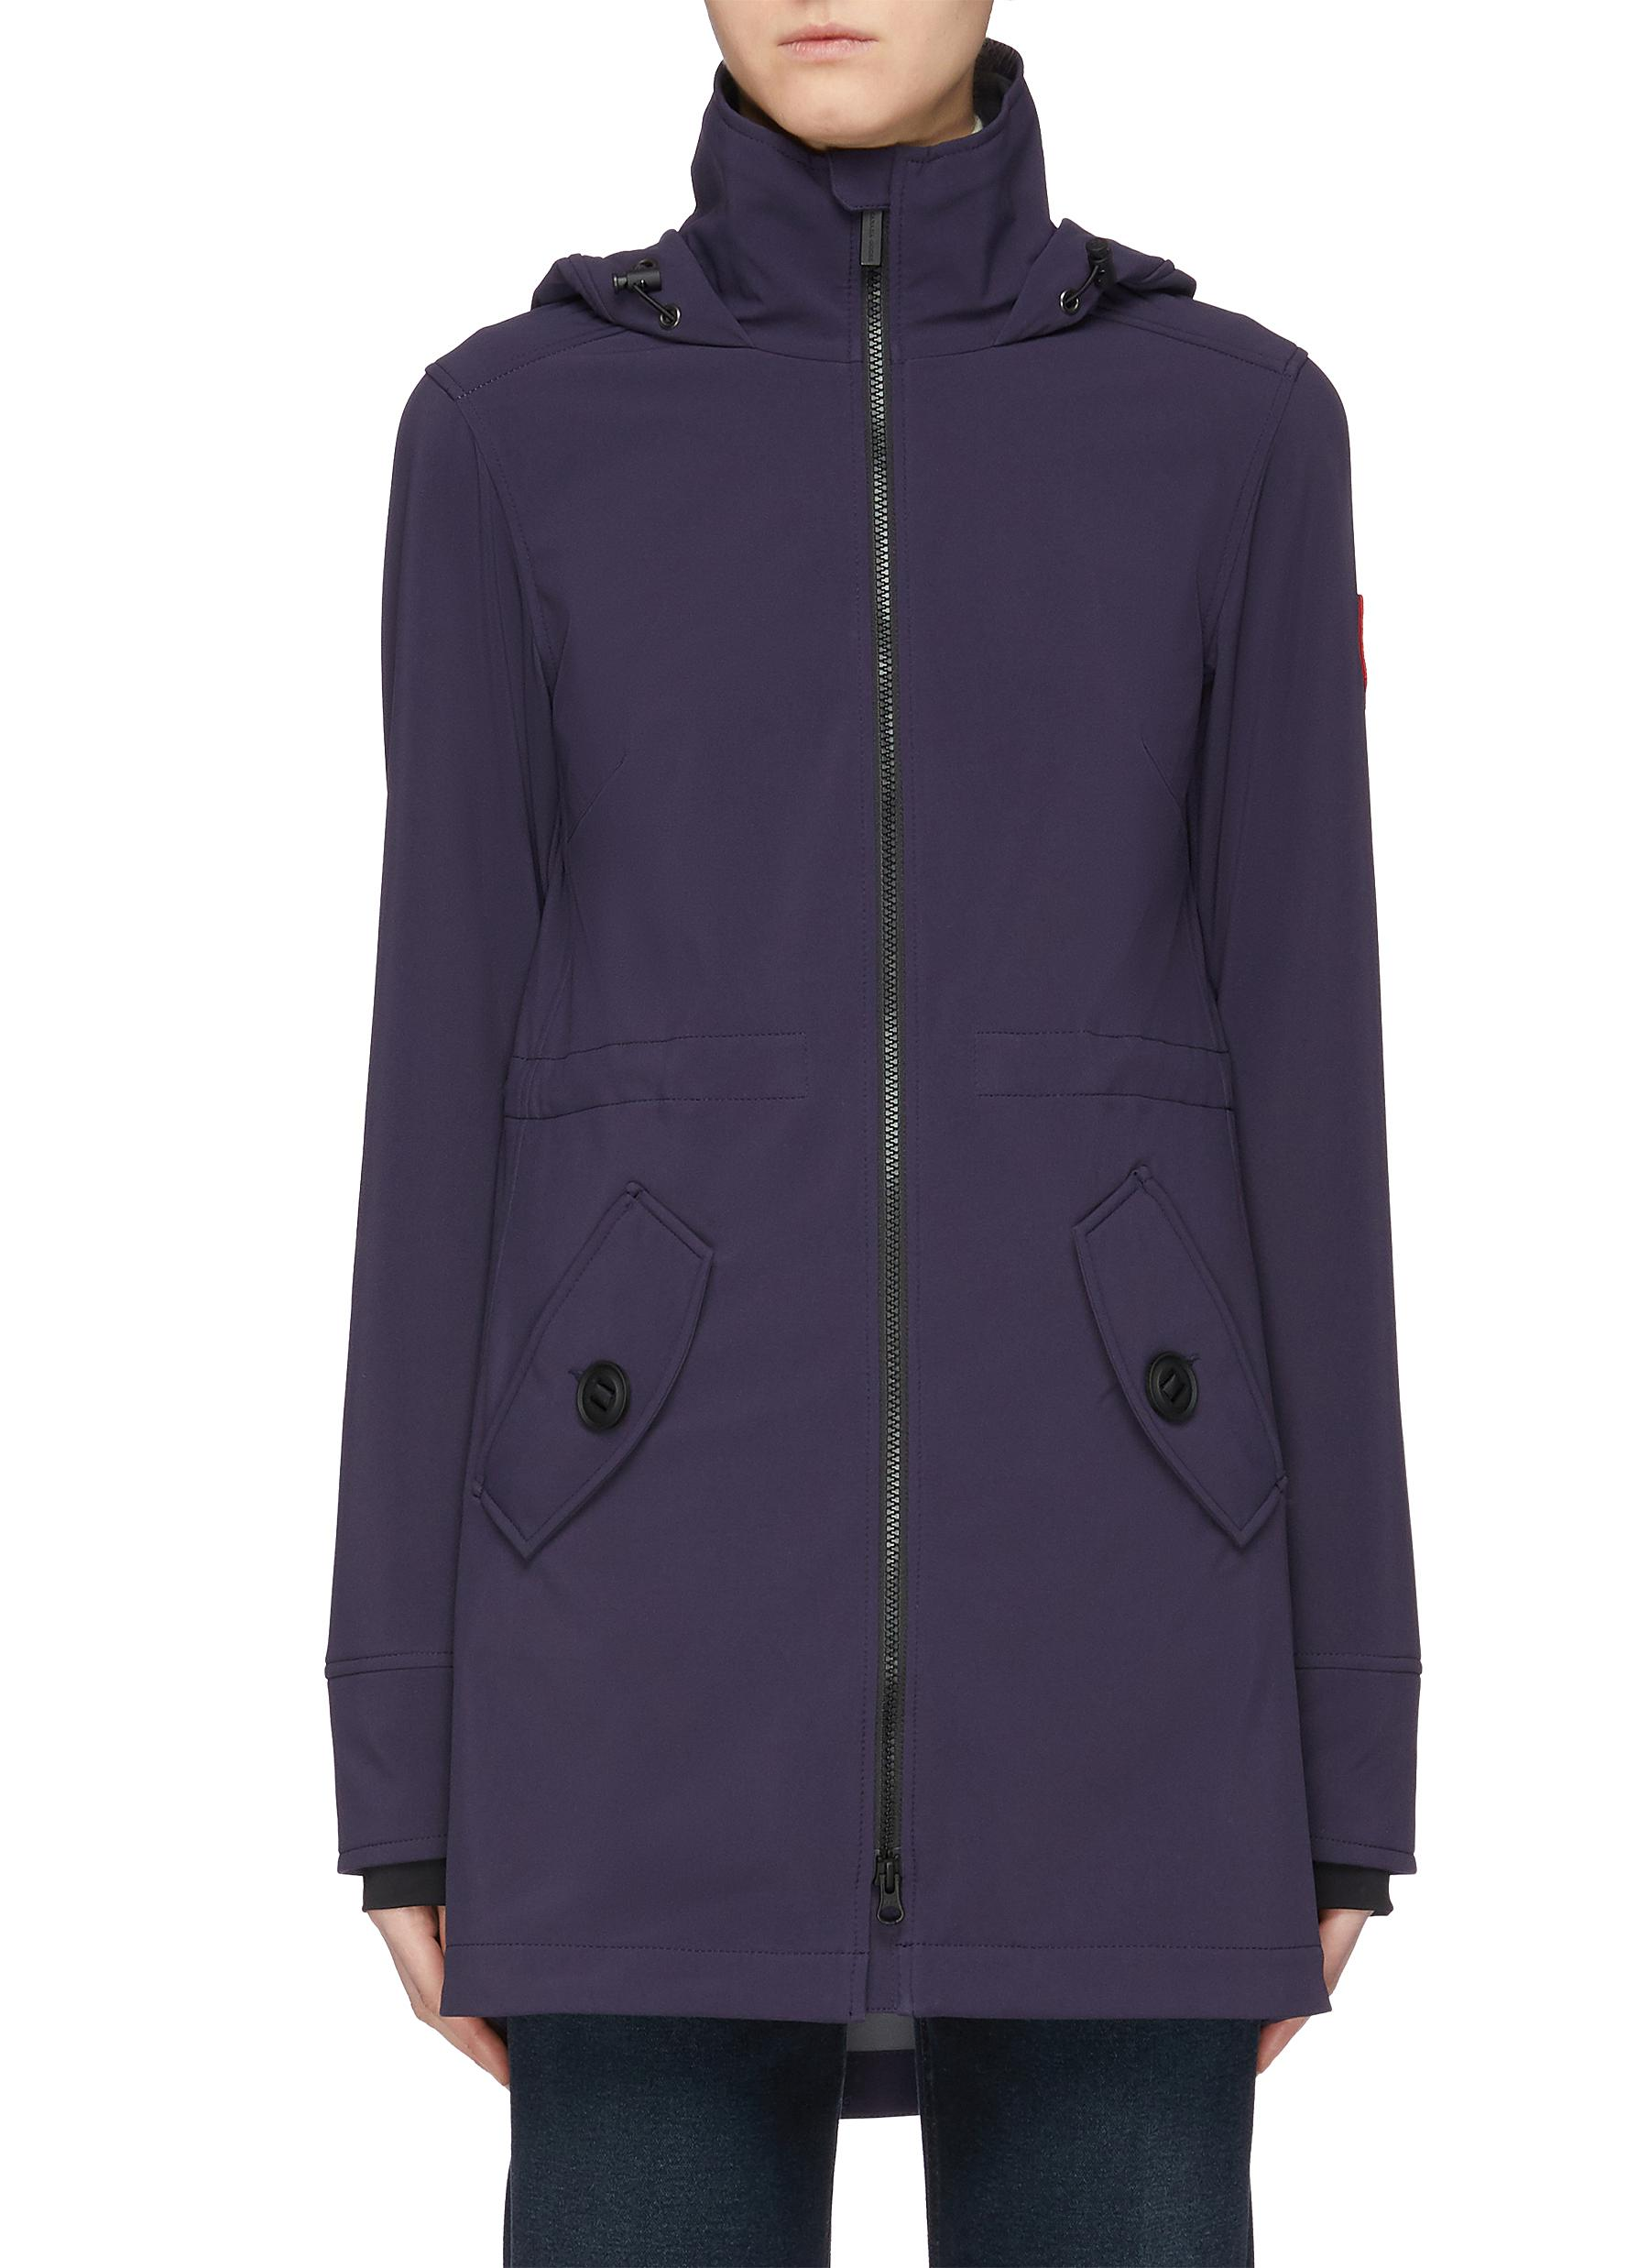 Buy Canada Goose Jackets 'Avery' Tri-Durance SS hooded jacket